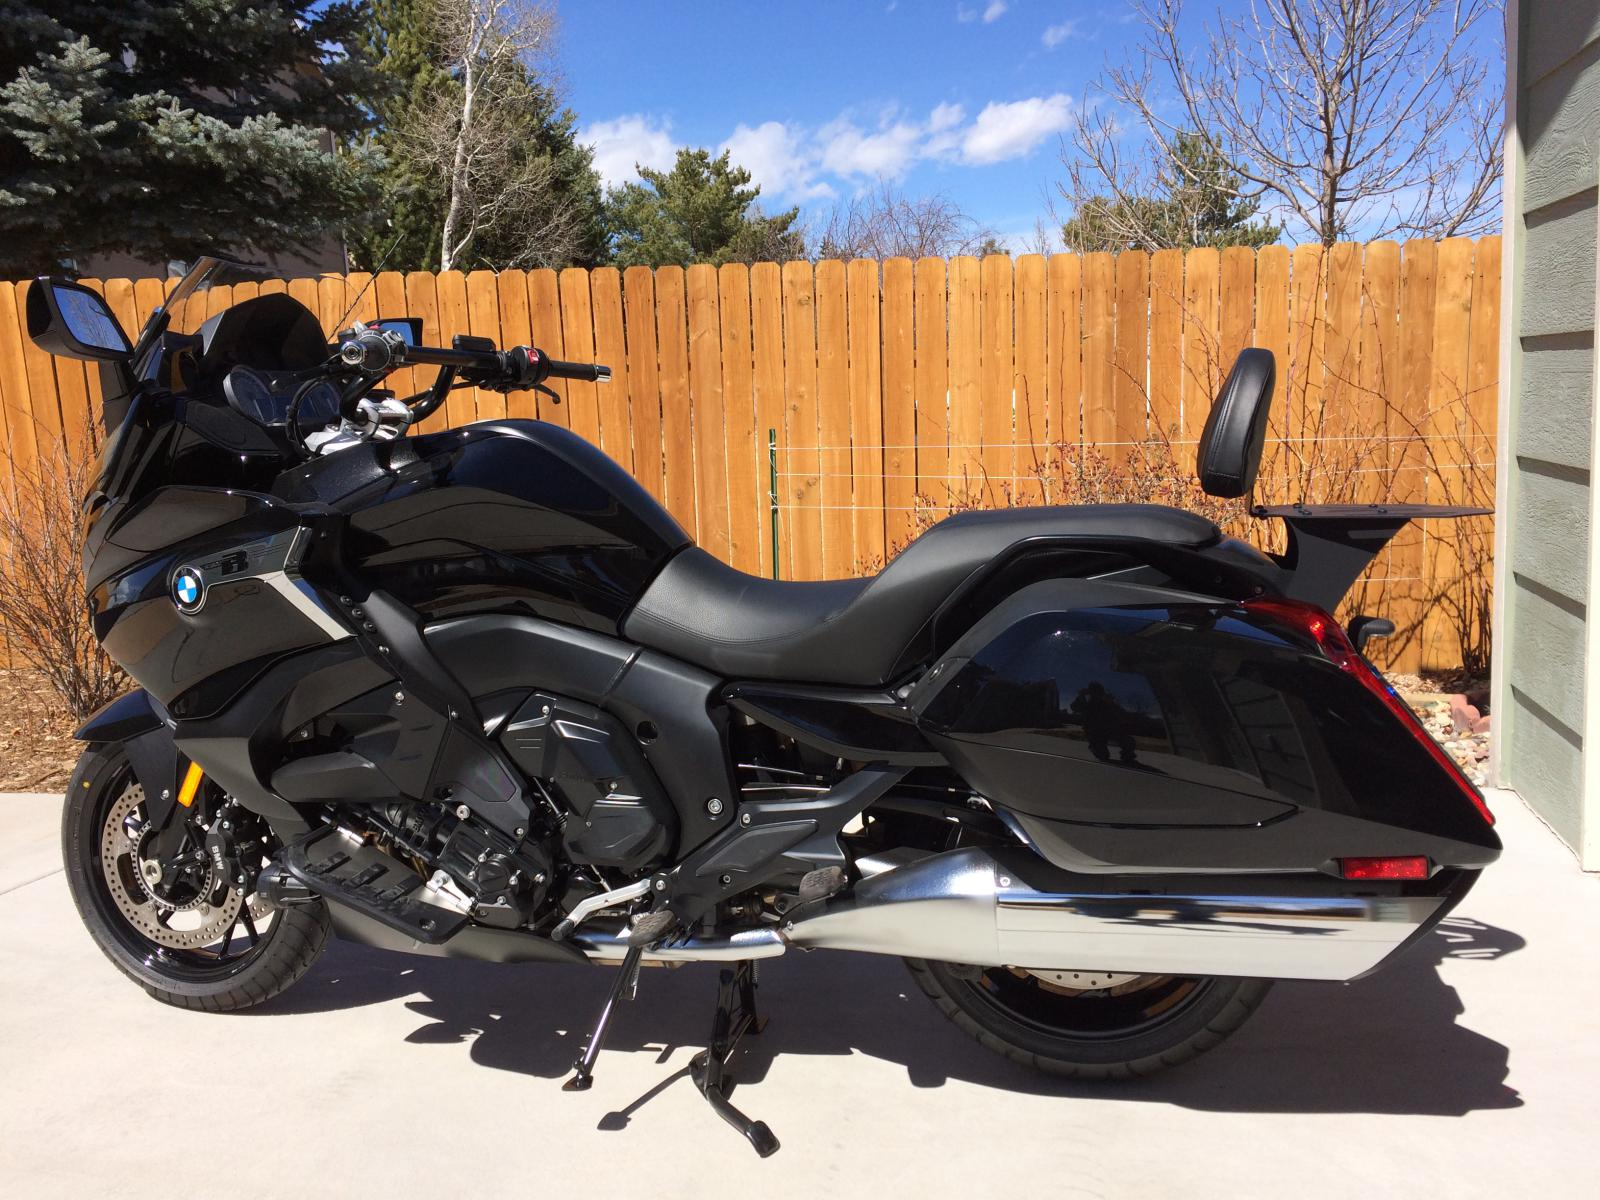 Stainless Steel Rack for my K1600B - Page 4 - BMW K1600 ...